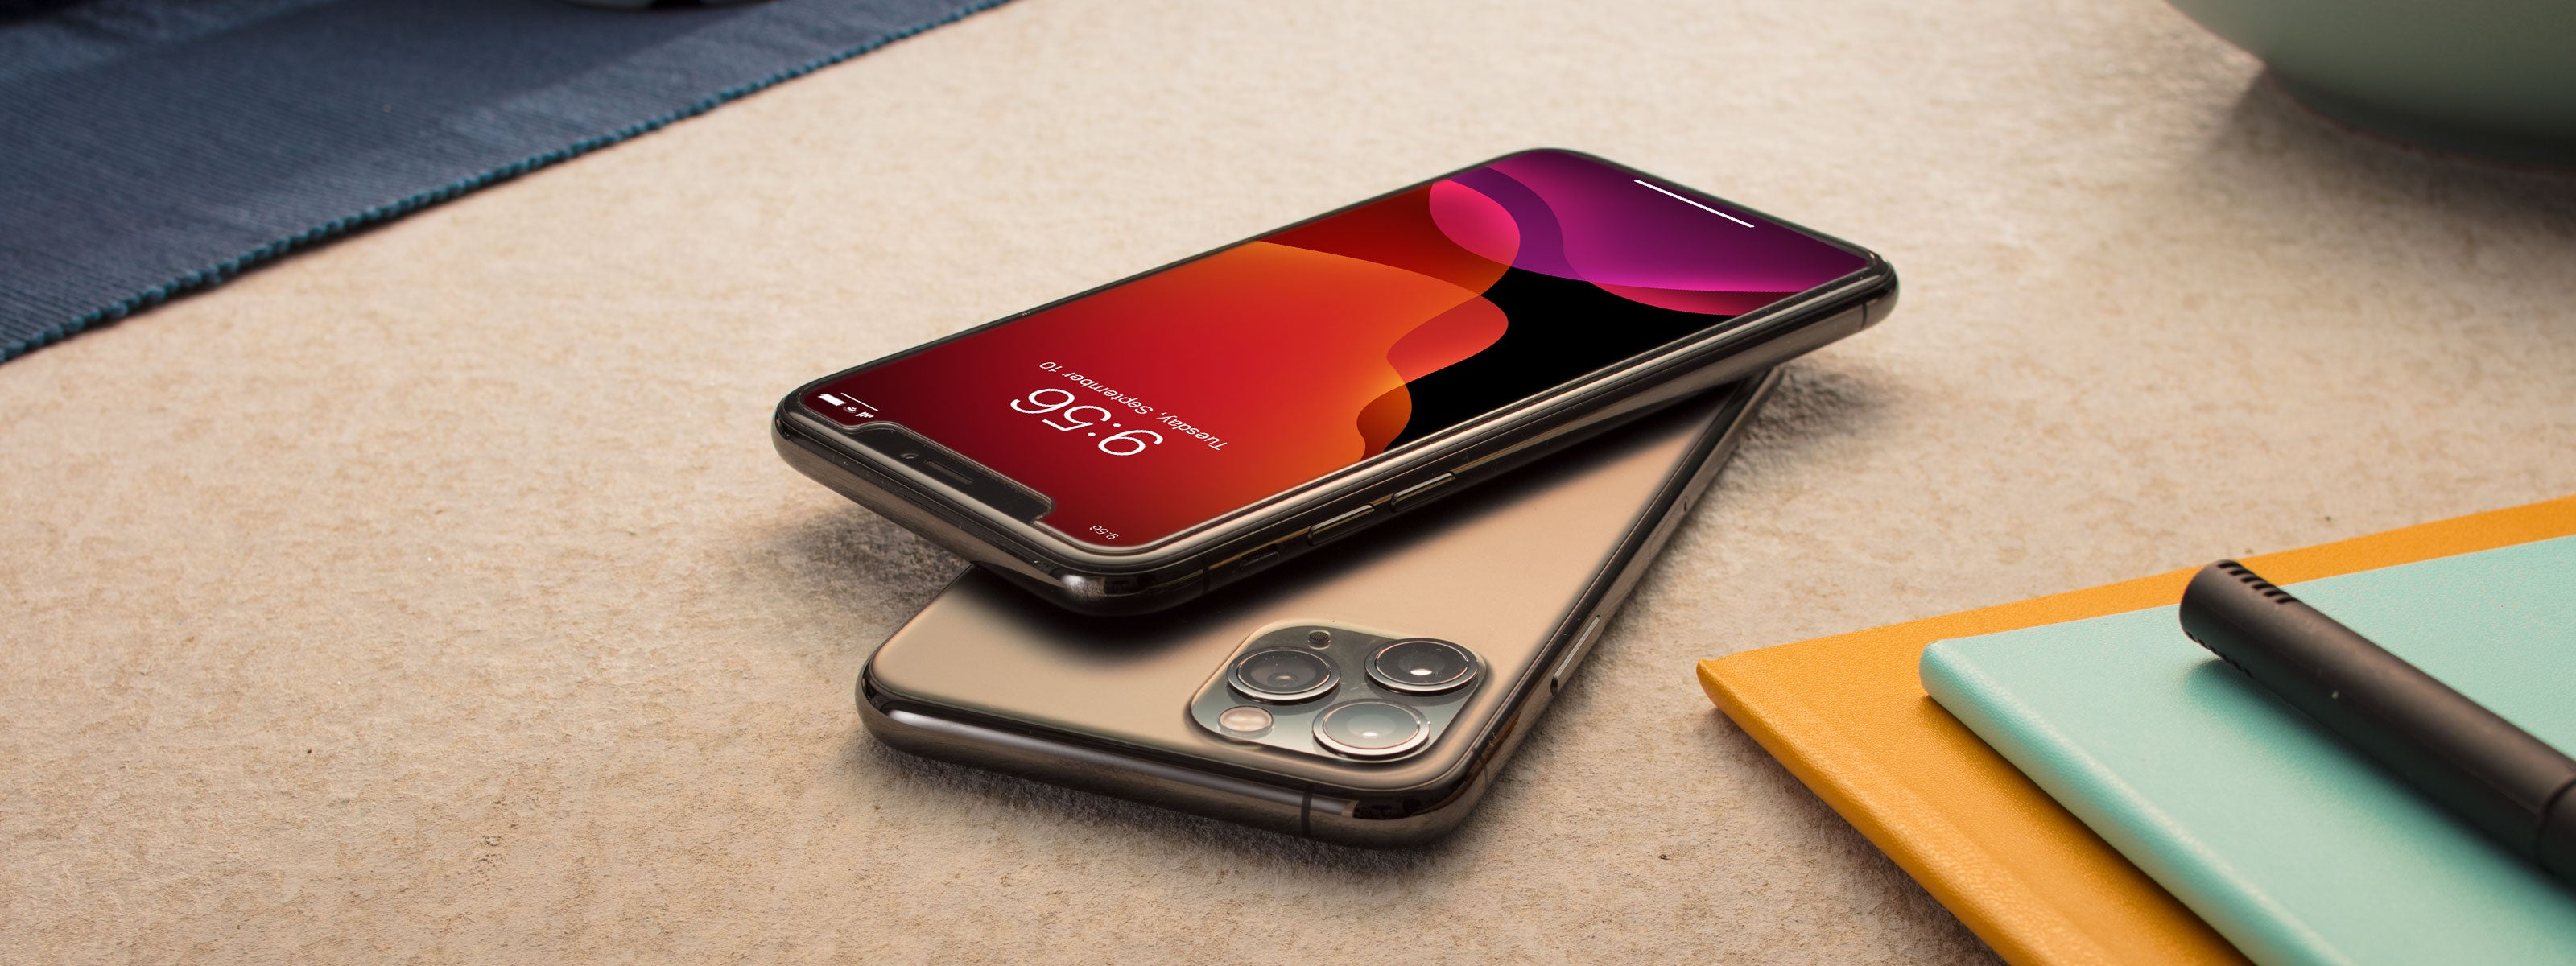 Two iphones lying on the table